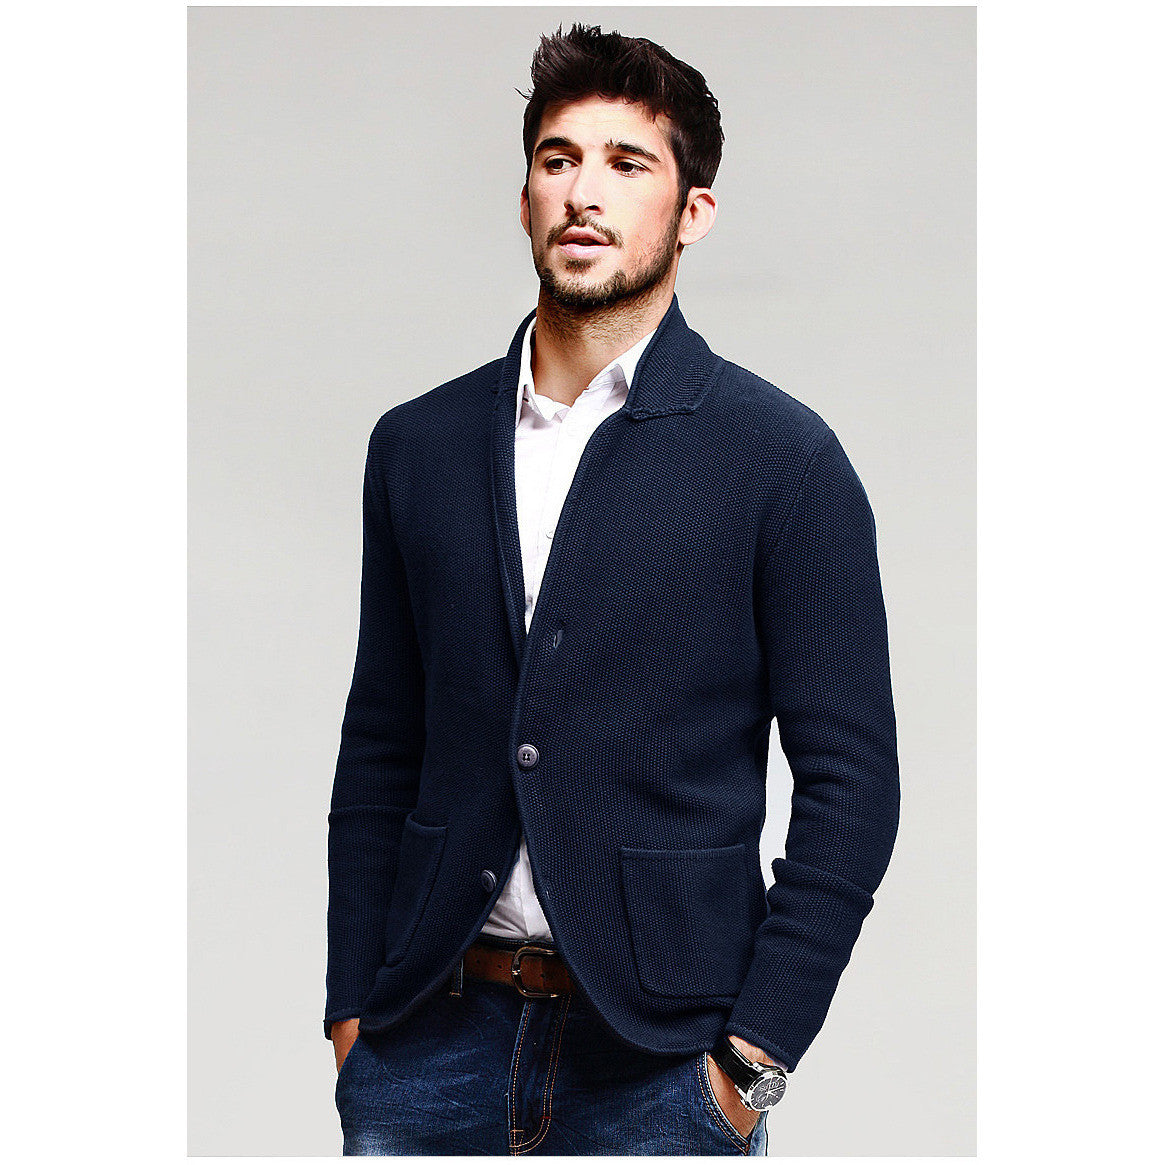 Des Blue Knitted Cardigan - Haberfasher